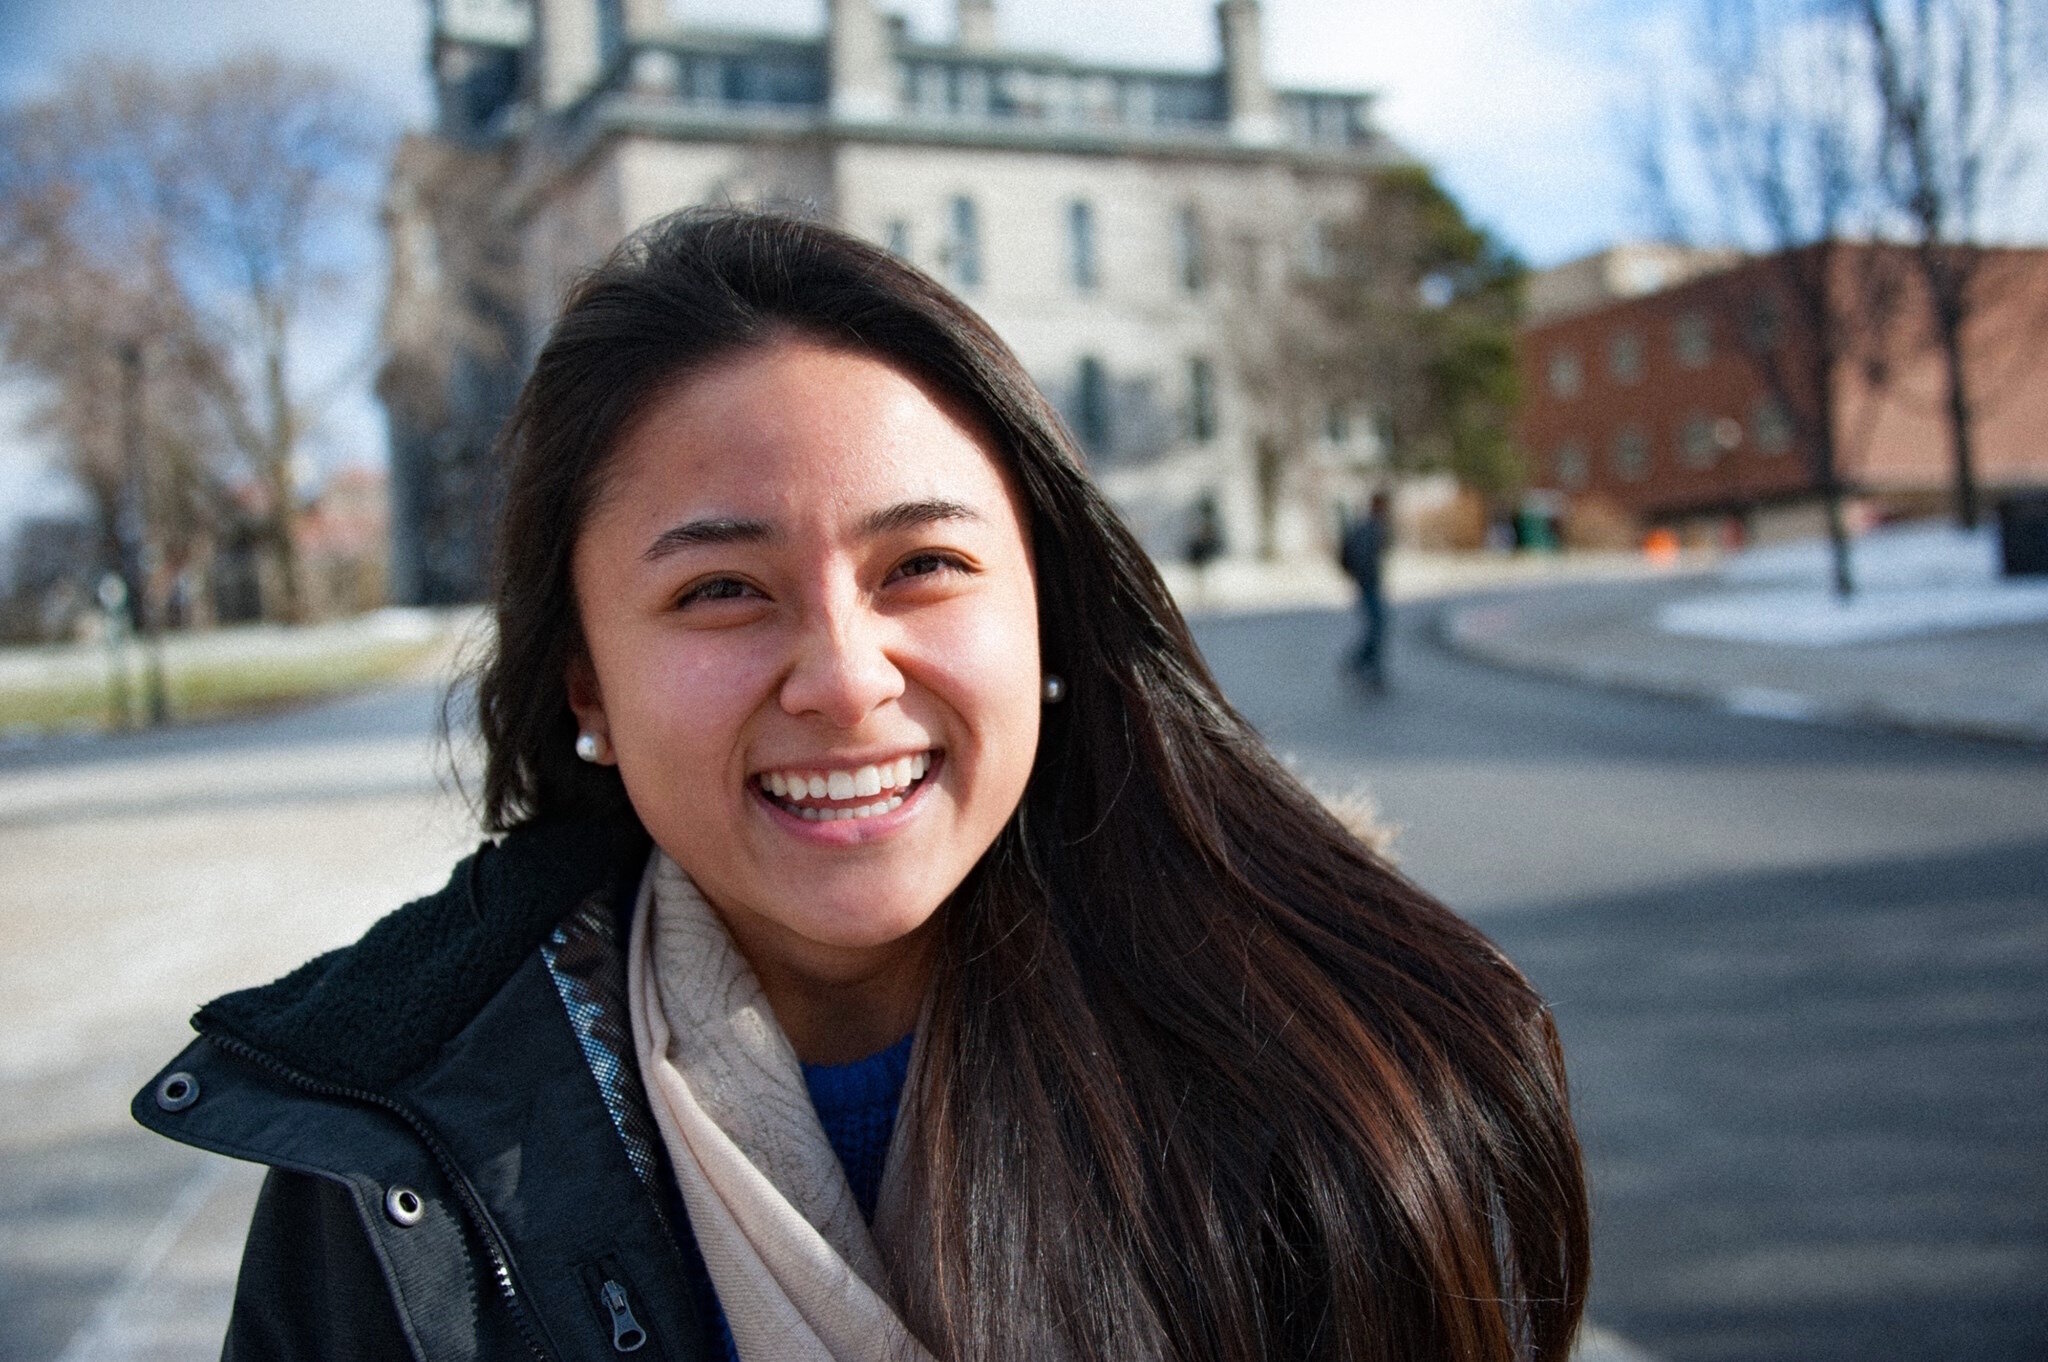 Born in Guangdong, China, Li spent her earlier years in Singapore. She's lived in Rochester, New York and now calls Shanghai home. Li poses for her friend's photography project outside of Hall of Languages in 2017. Photo Courtesy: Joann Li